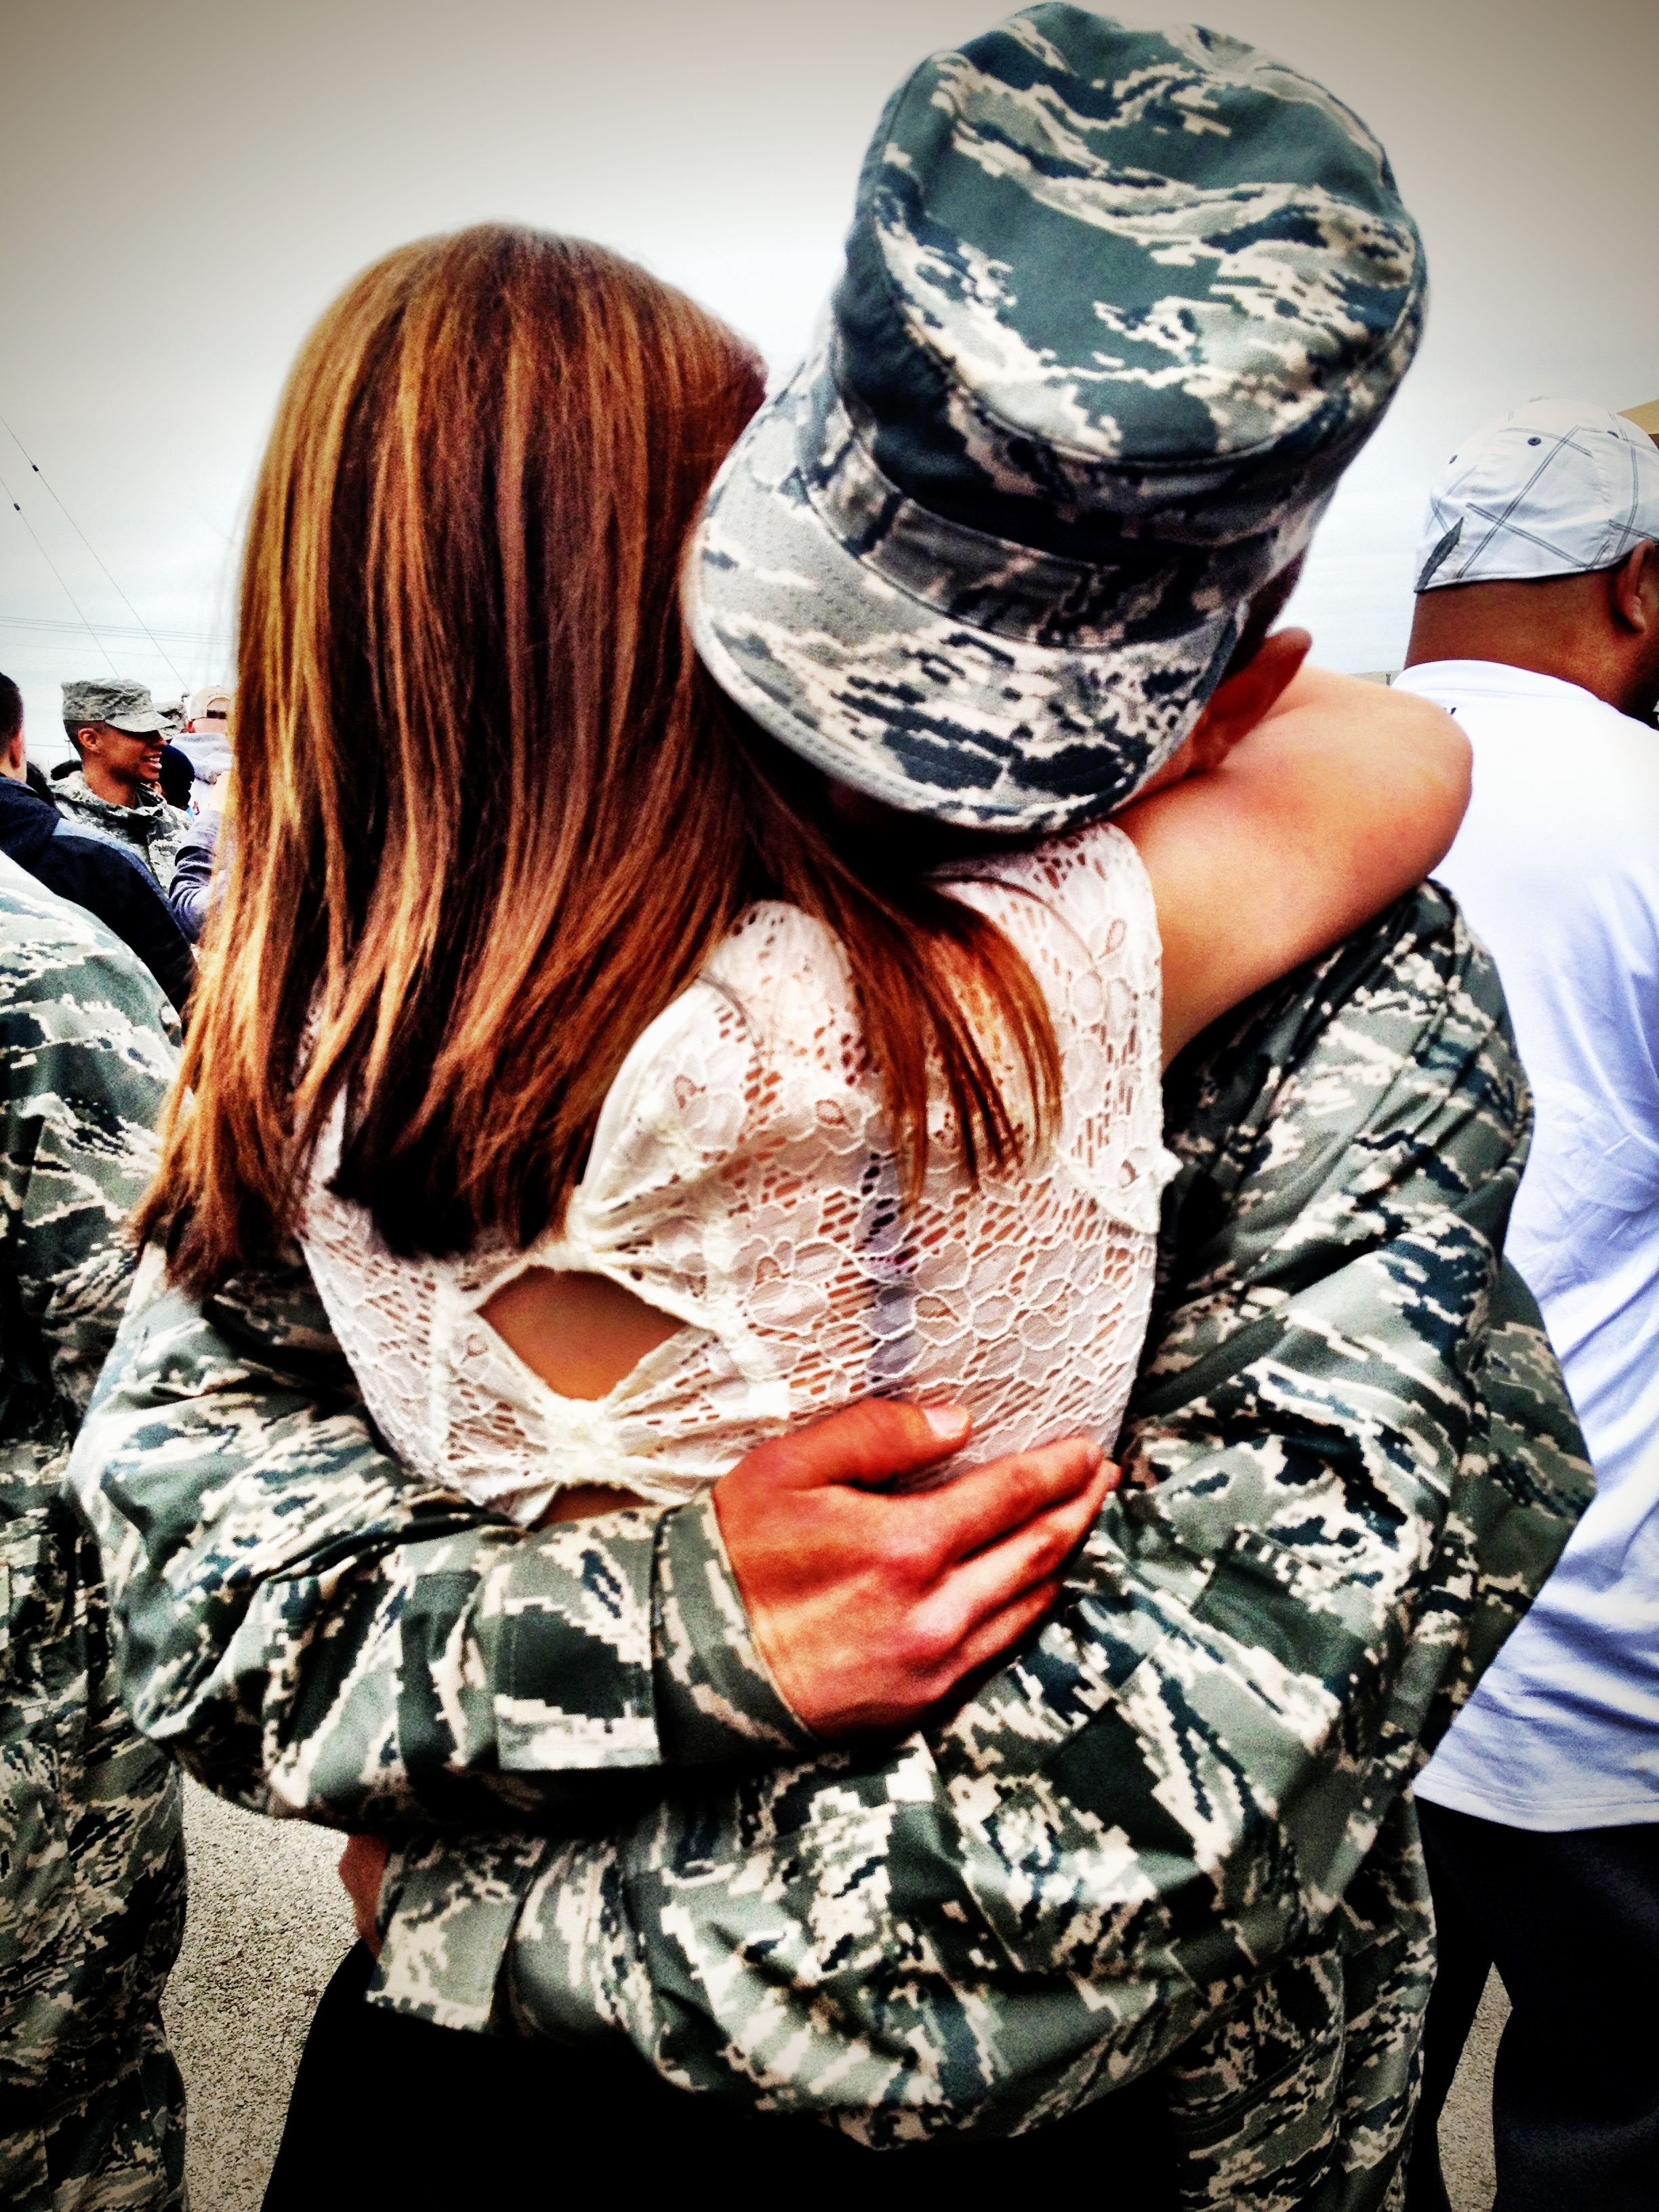 Stay Up to Date on Military Spouse and Family News and Benefits